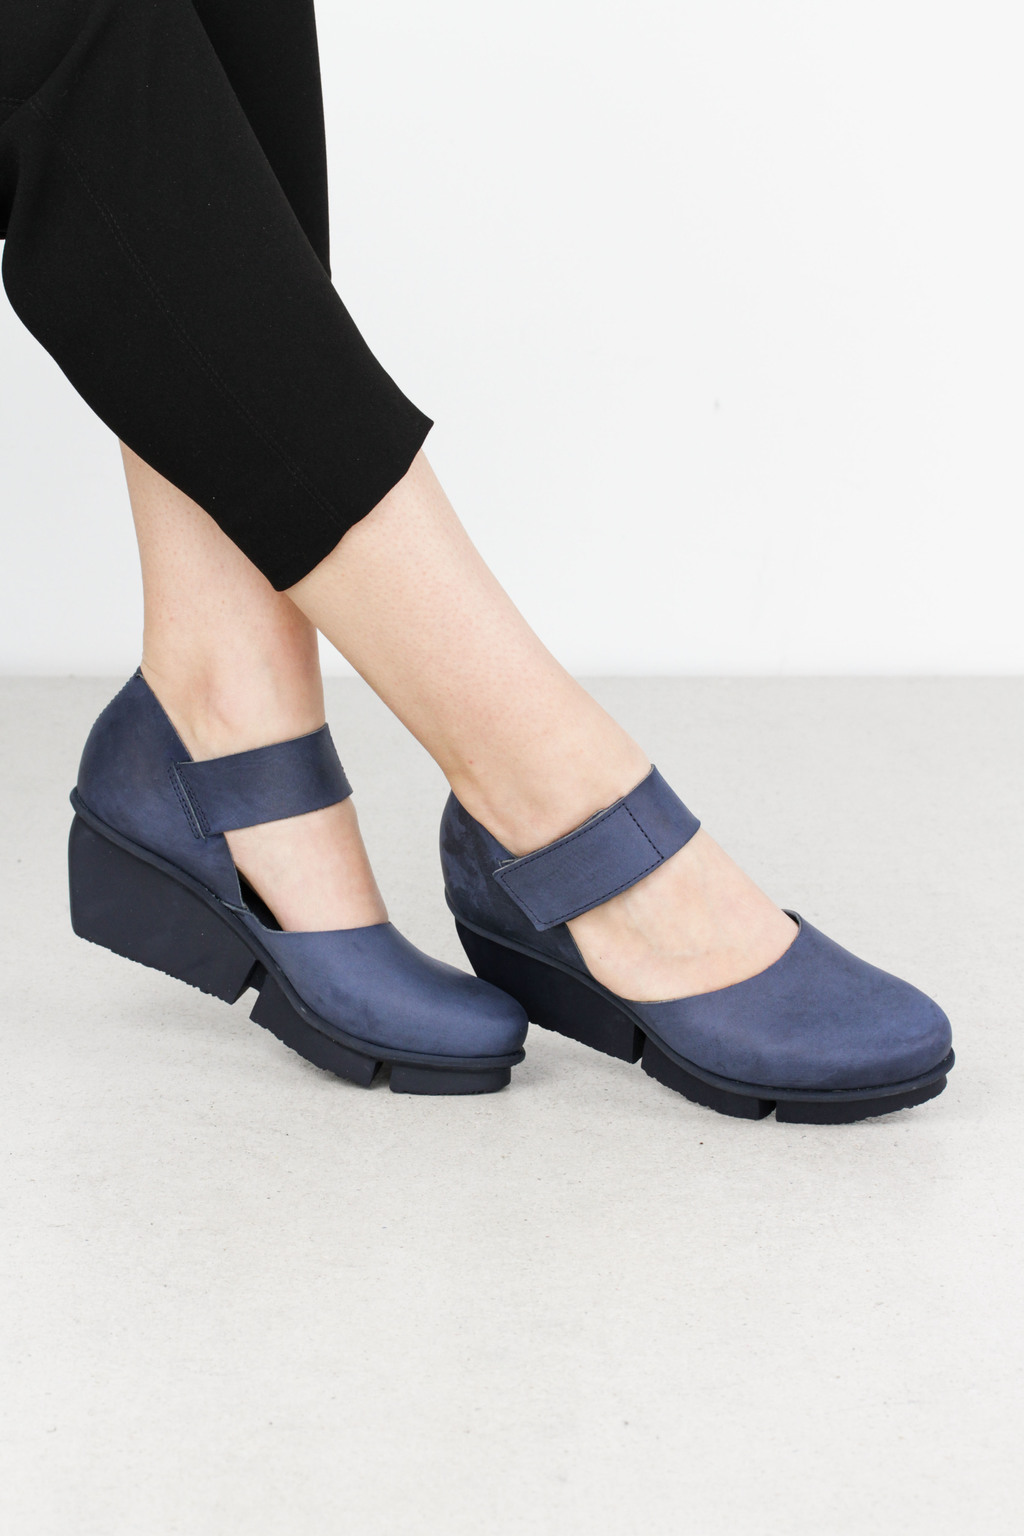 Hostess navy pul st nvy2 2